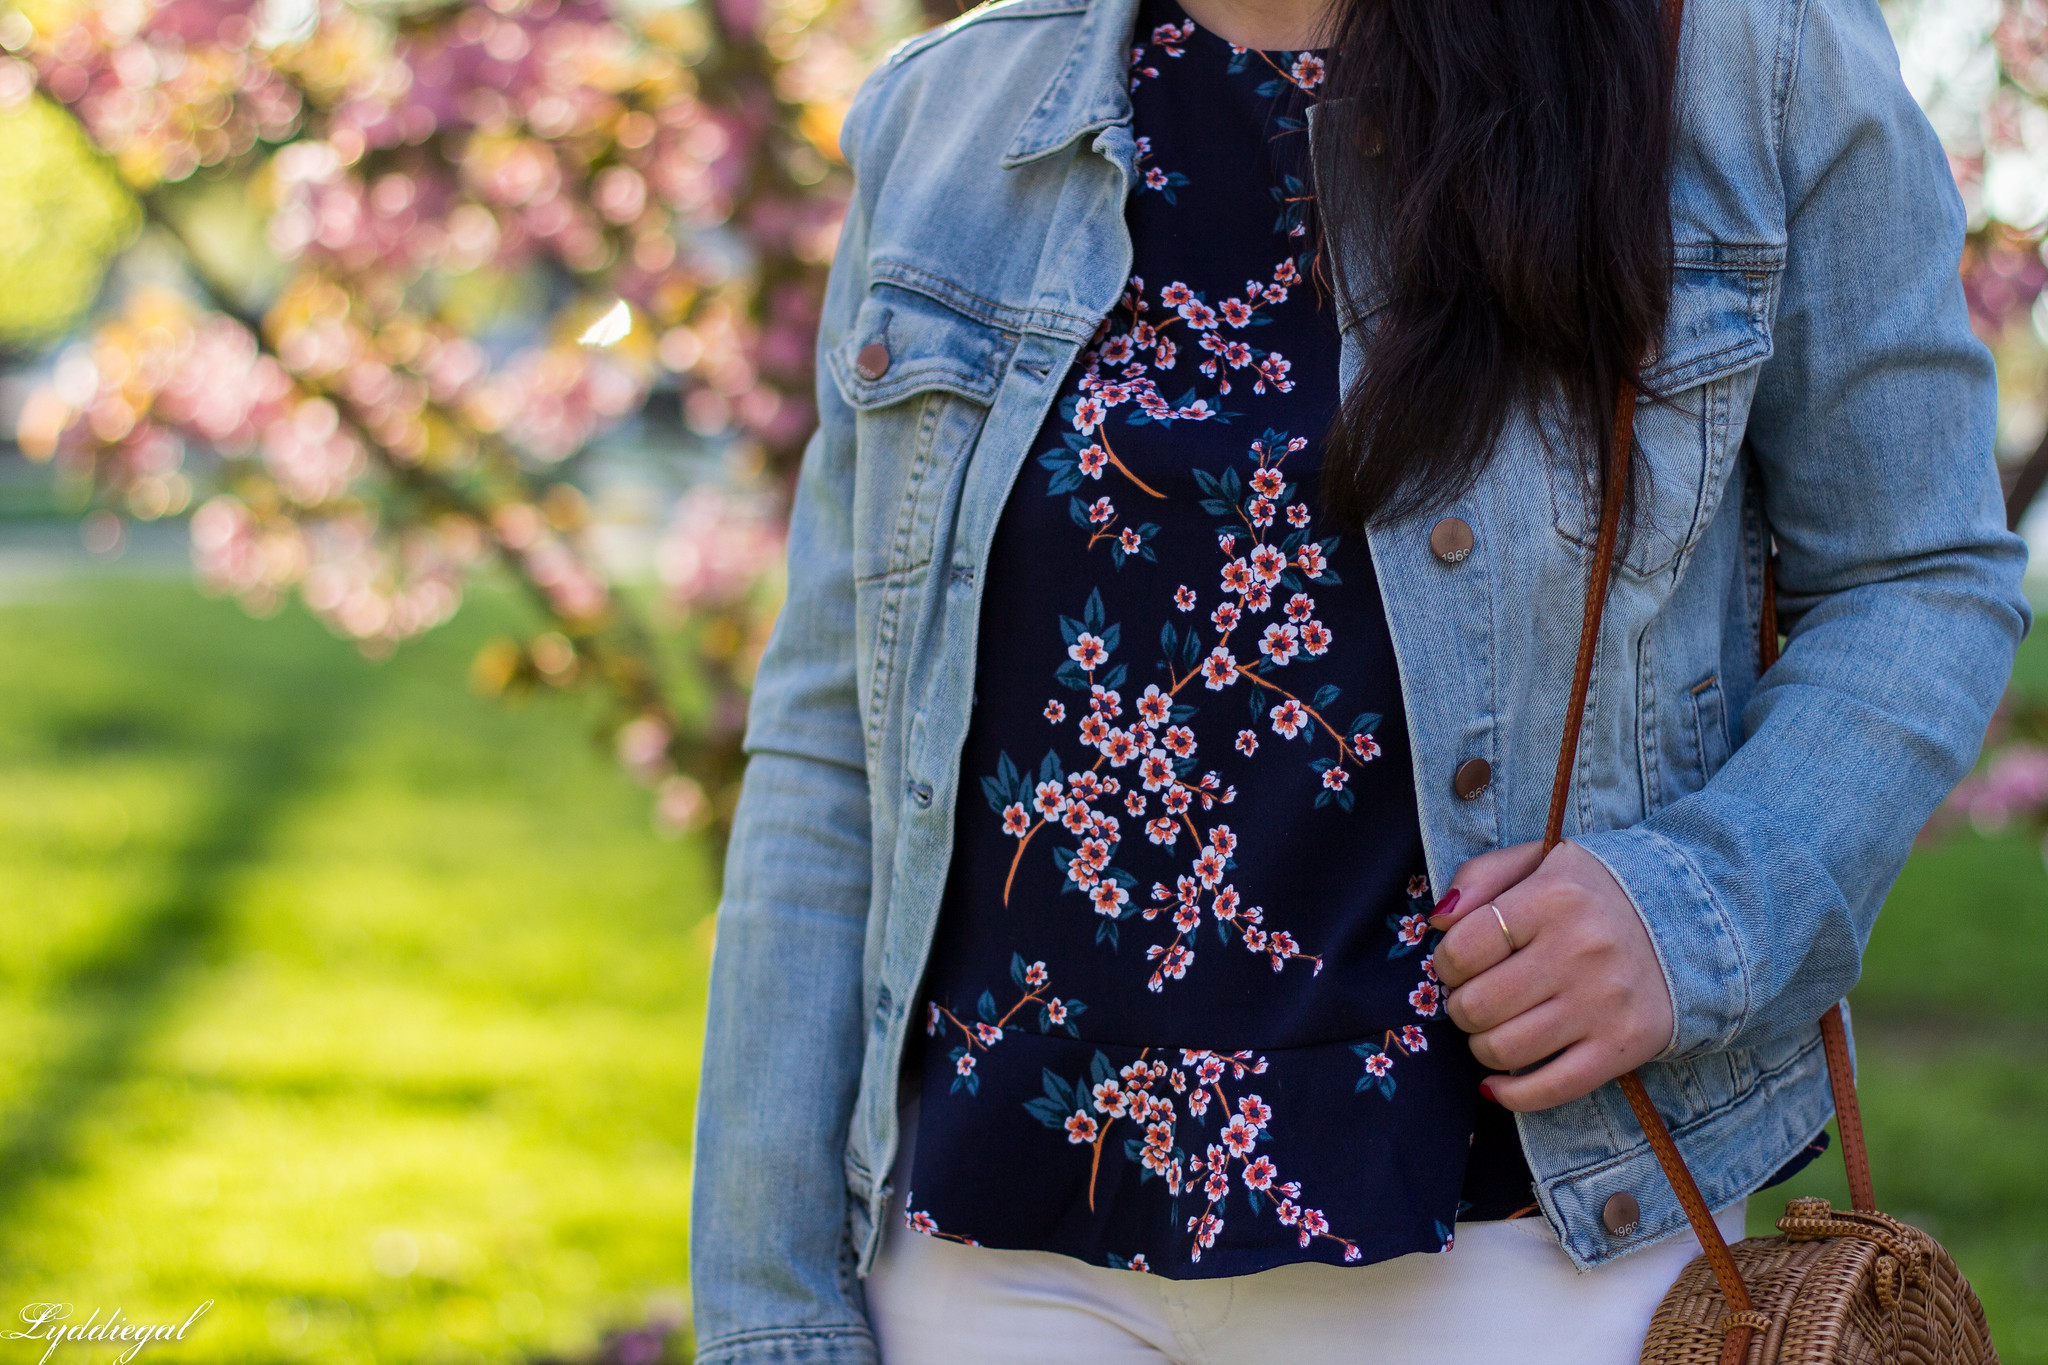 denim jacket, cherry blossom print blouse, white jeans, blue loafers-14.jpg